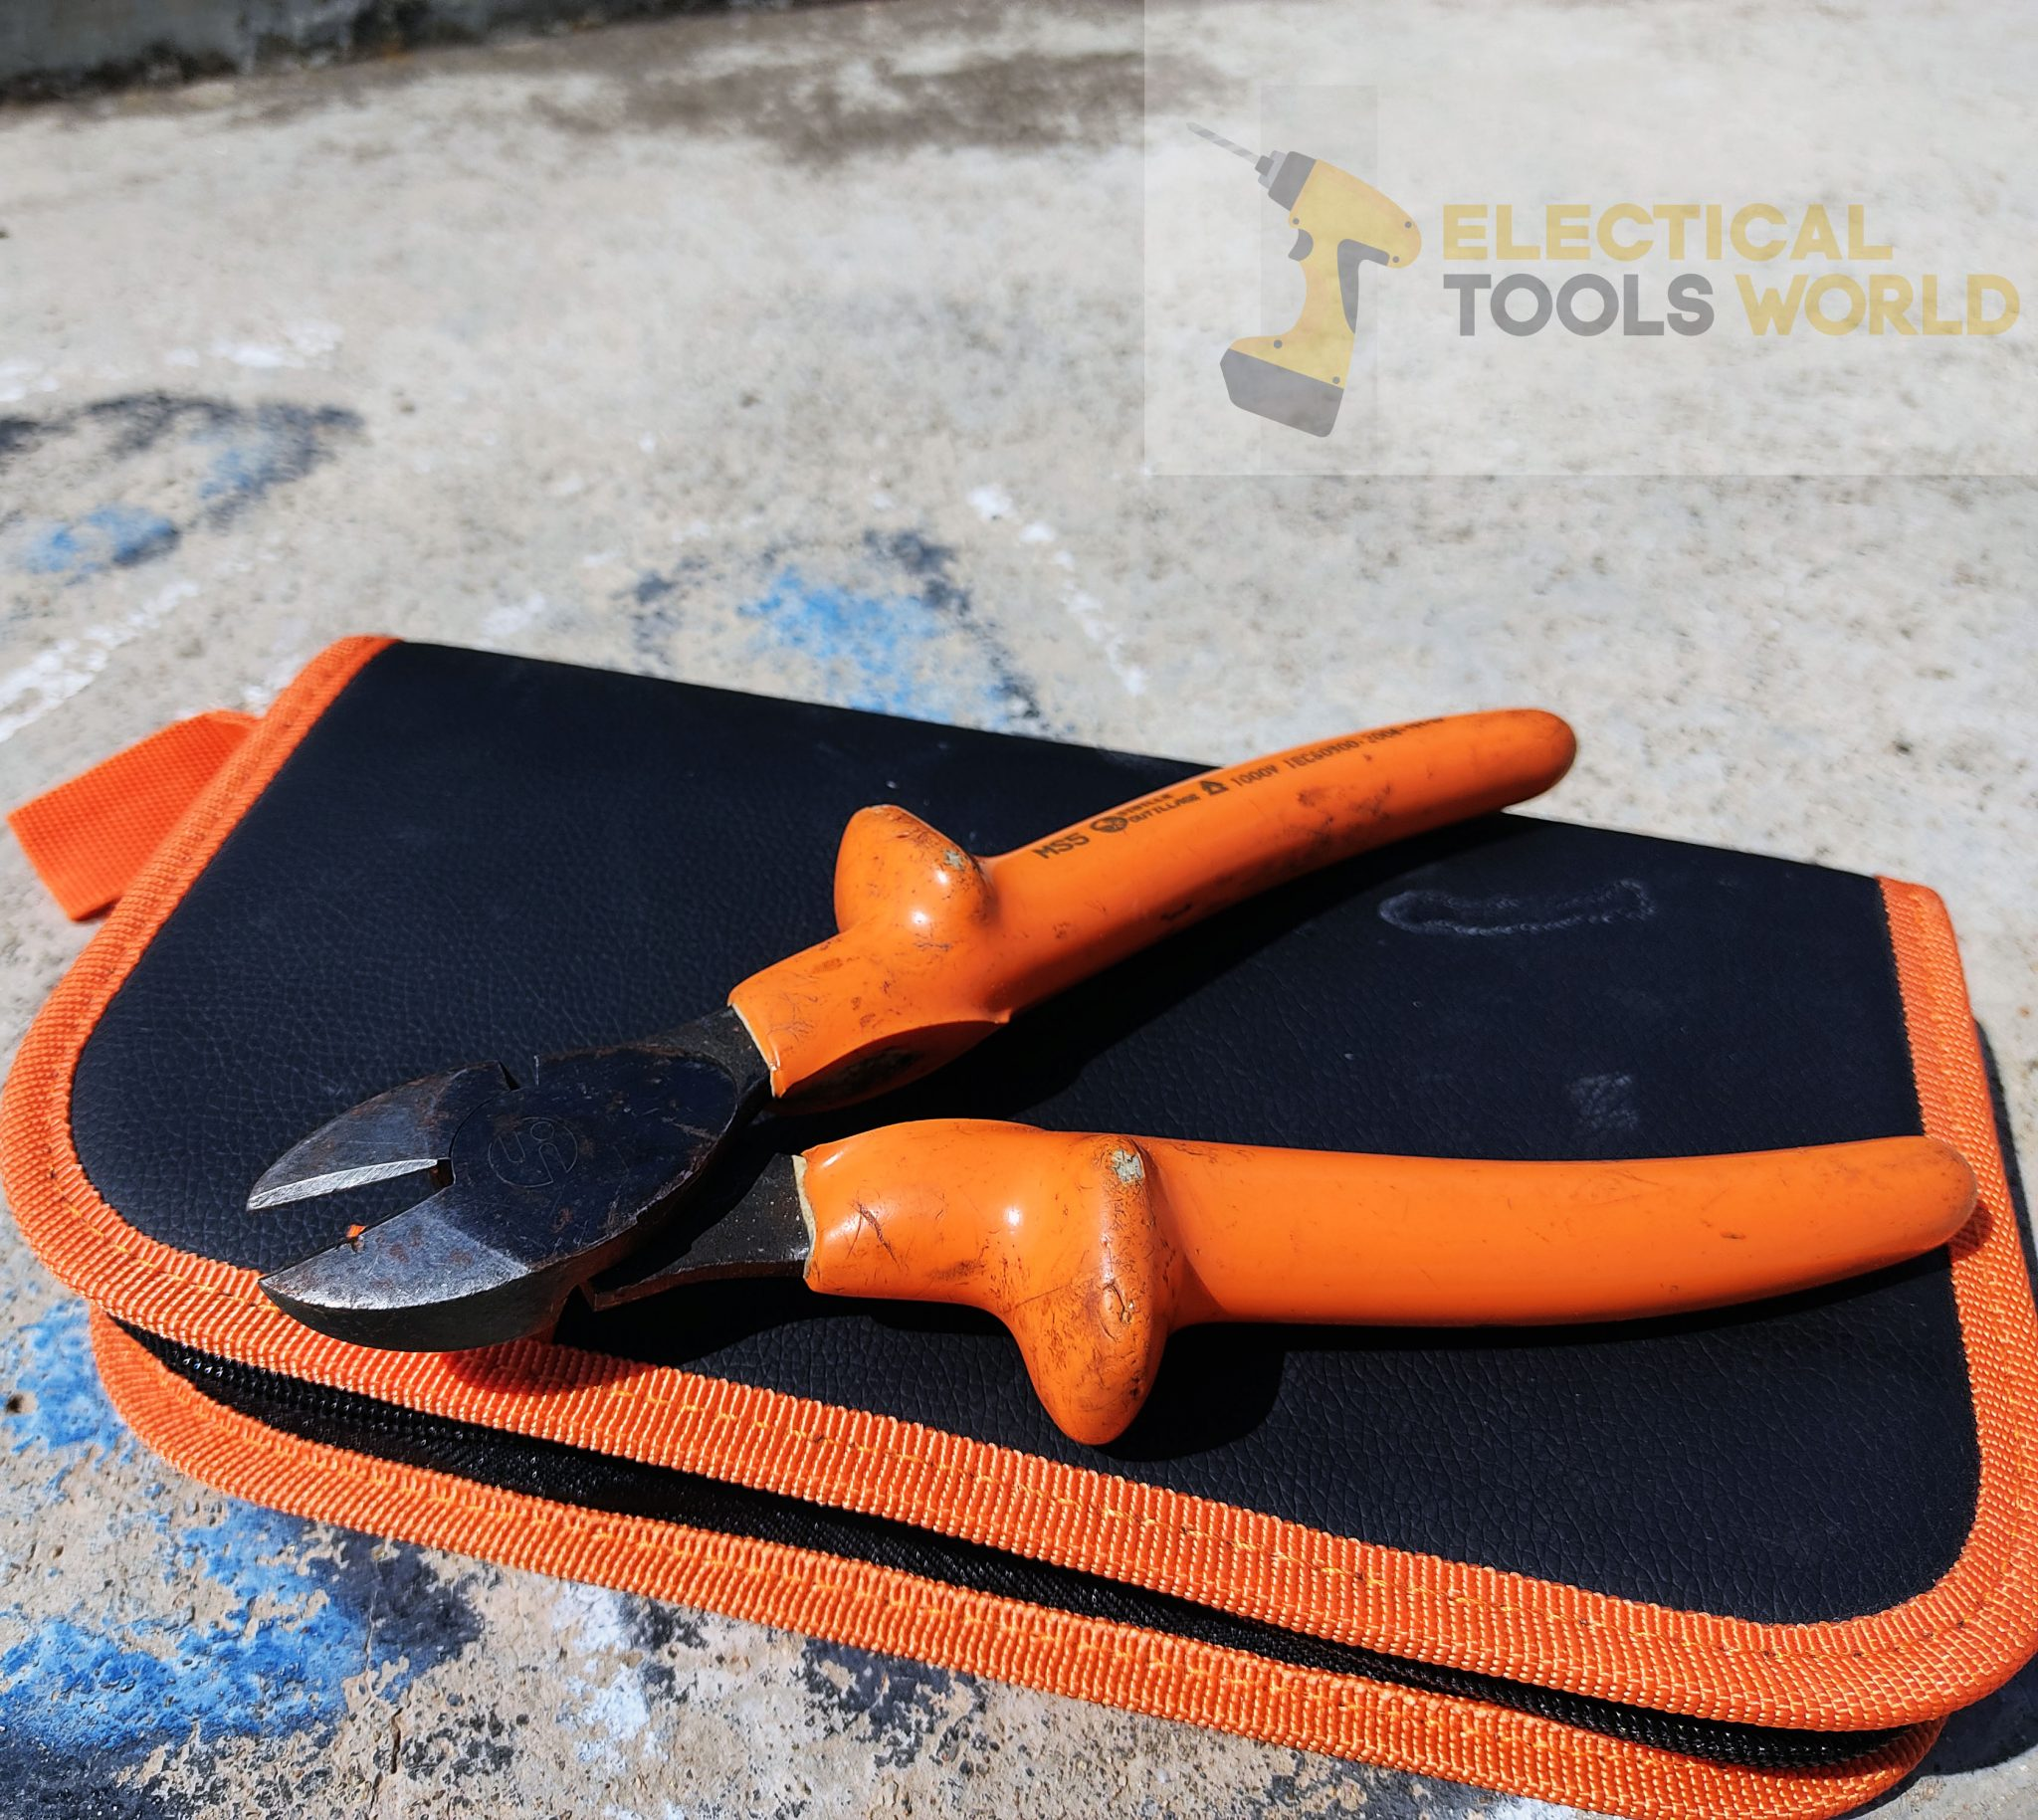 Tools Every DIYer Should Own